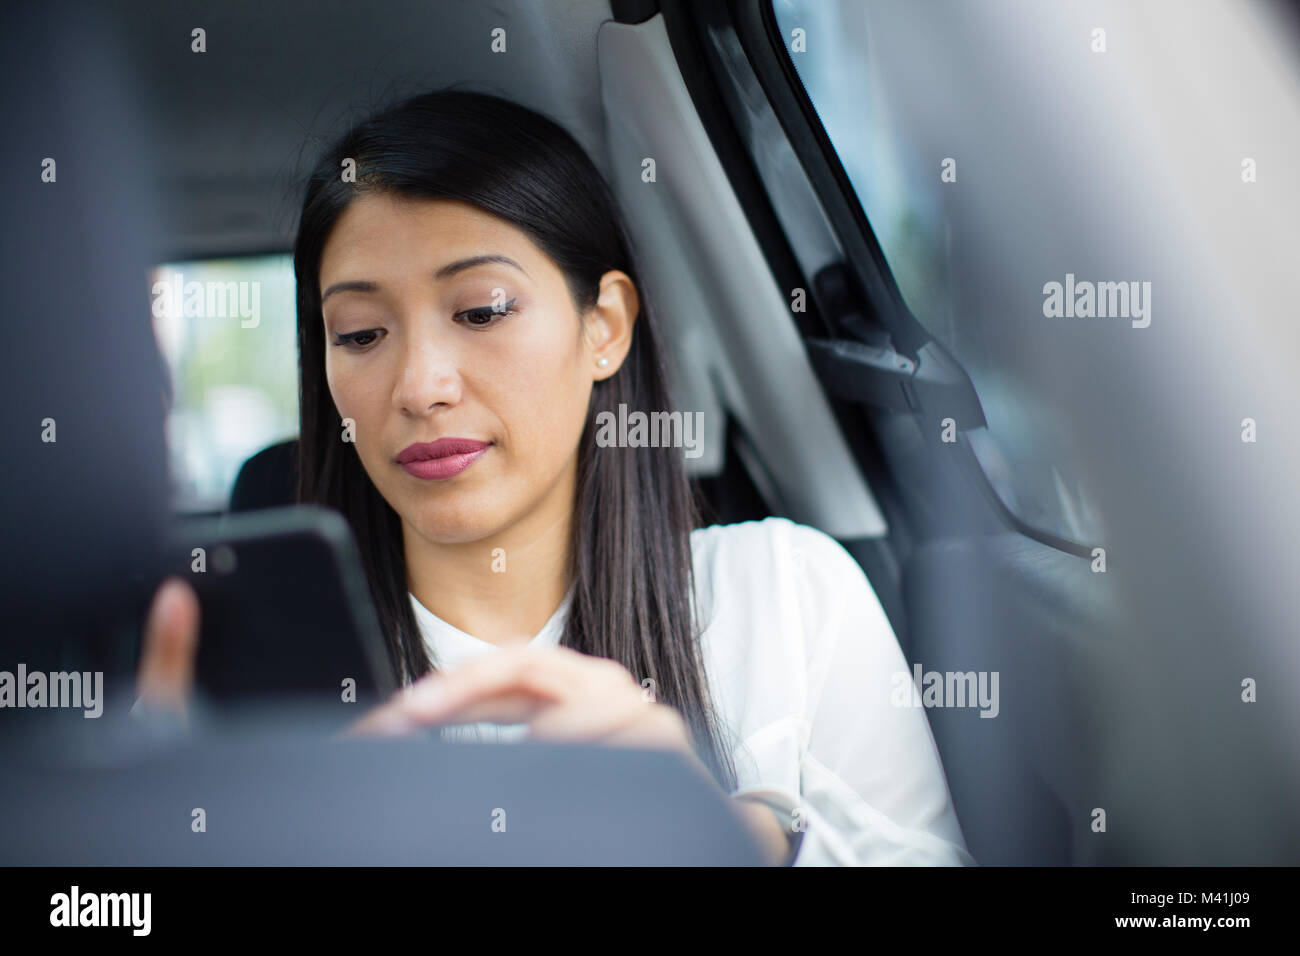 Businesswoman in taxi cab using smartphone - Stock Image